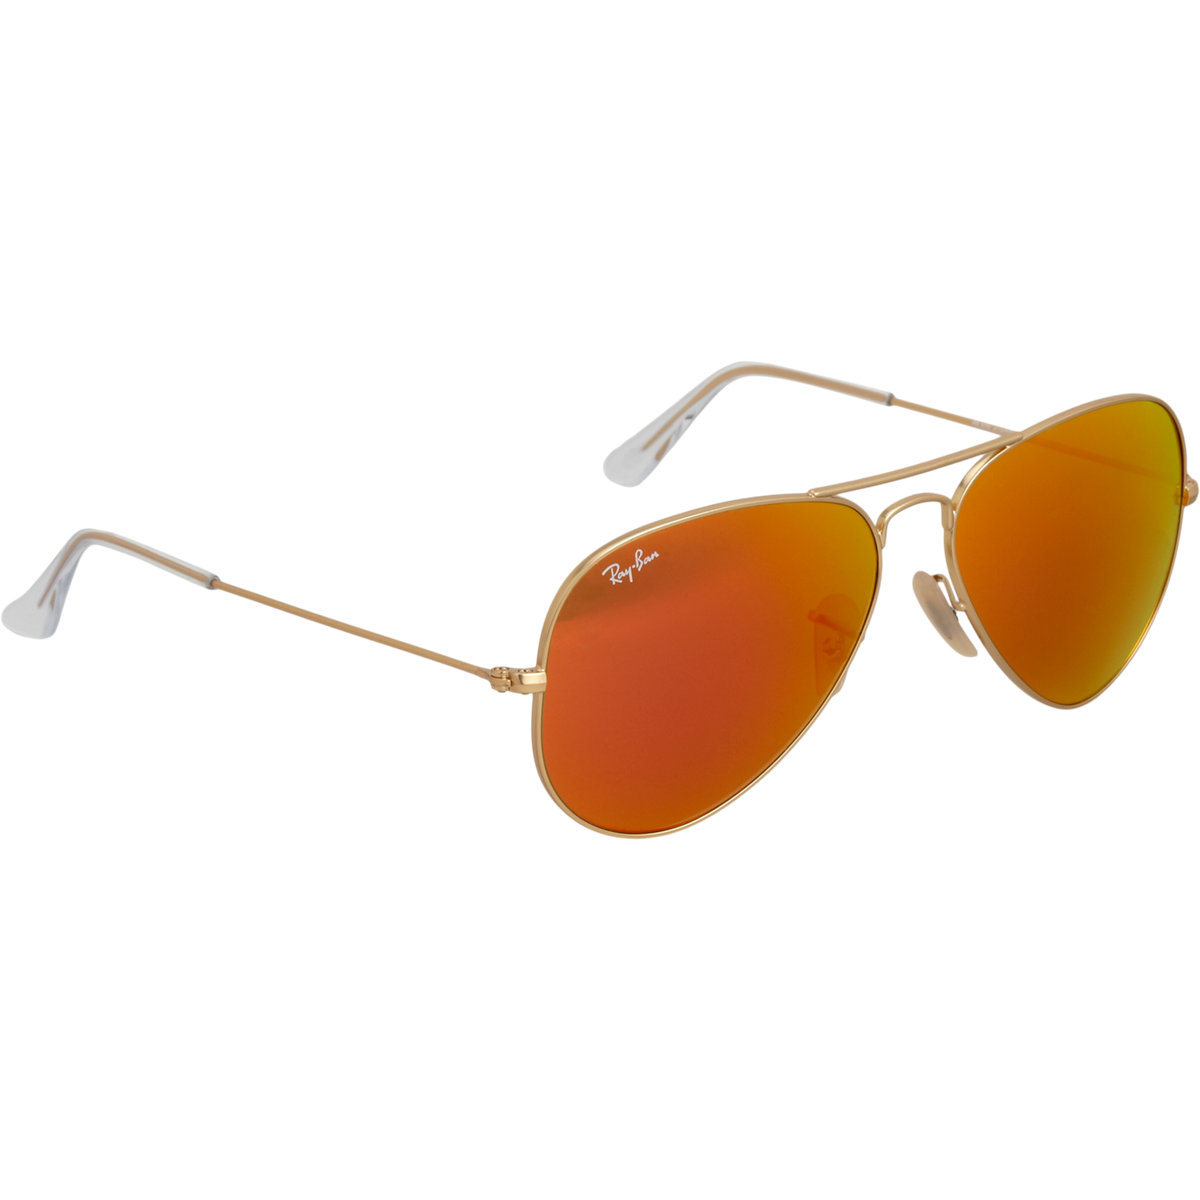 575c62a2c3 Ray Ban Red Frame Aviator Sunglasses